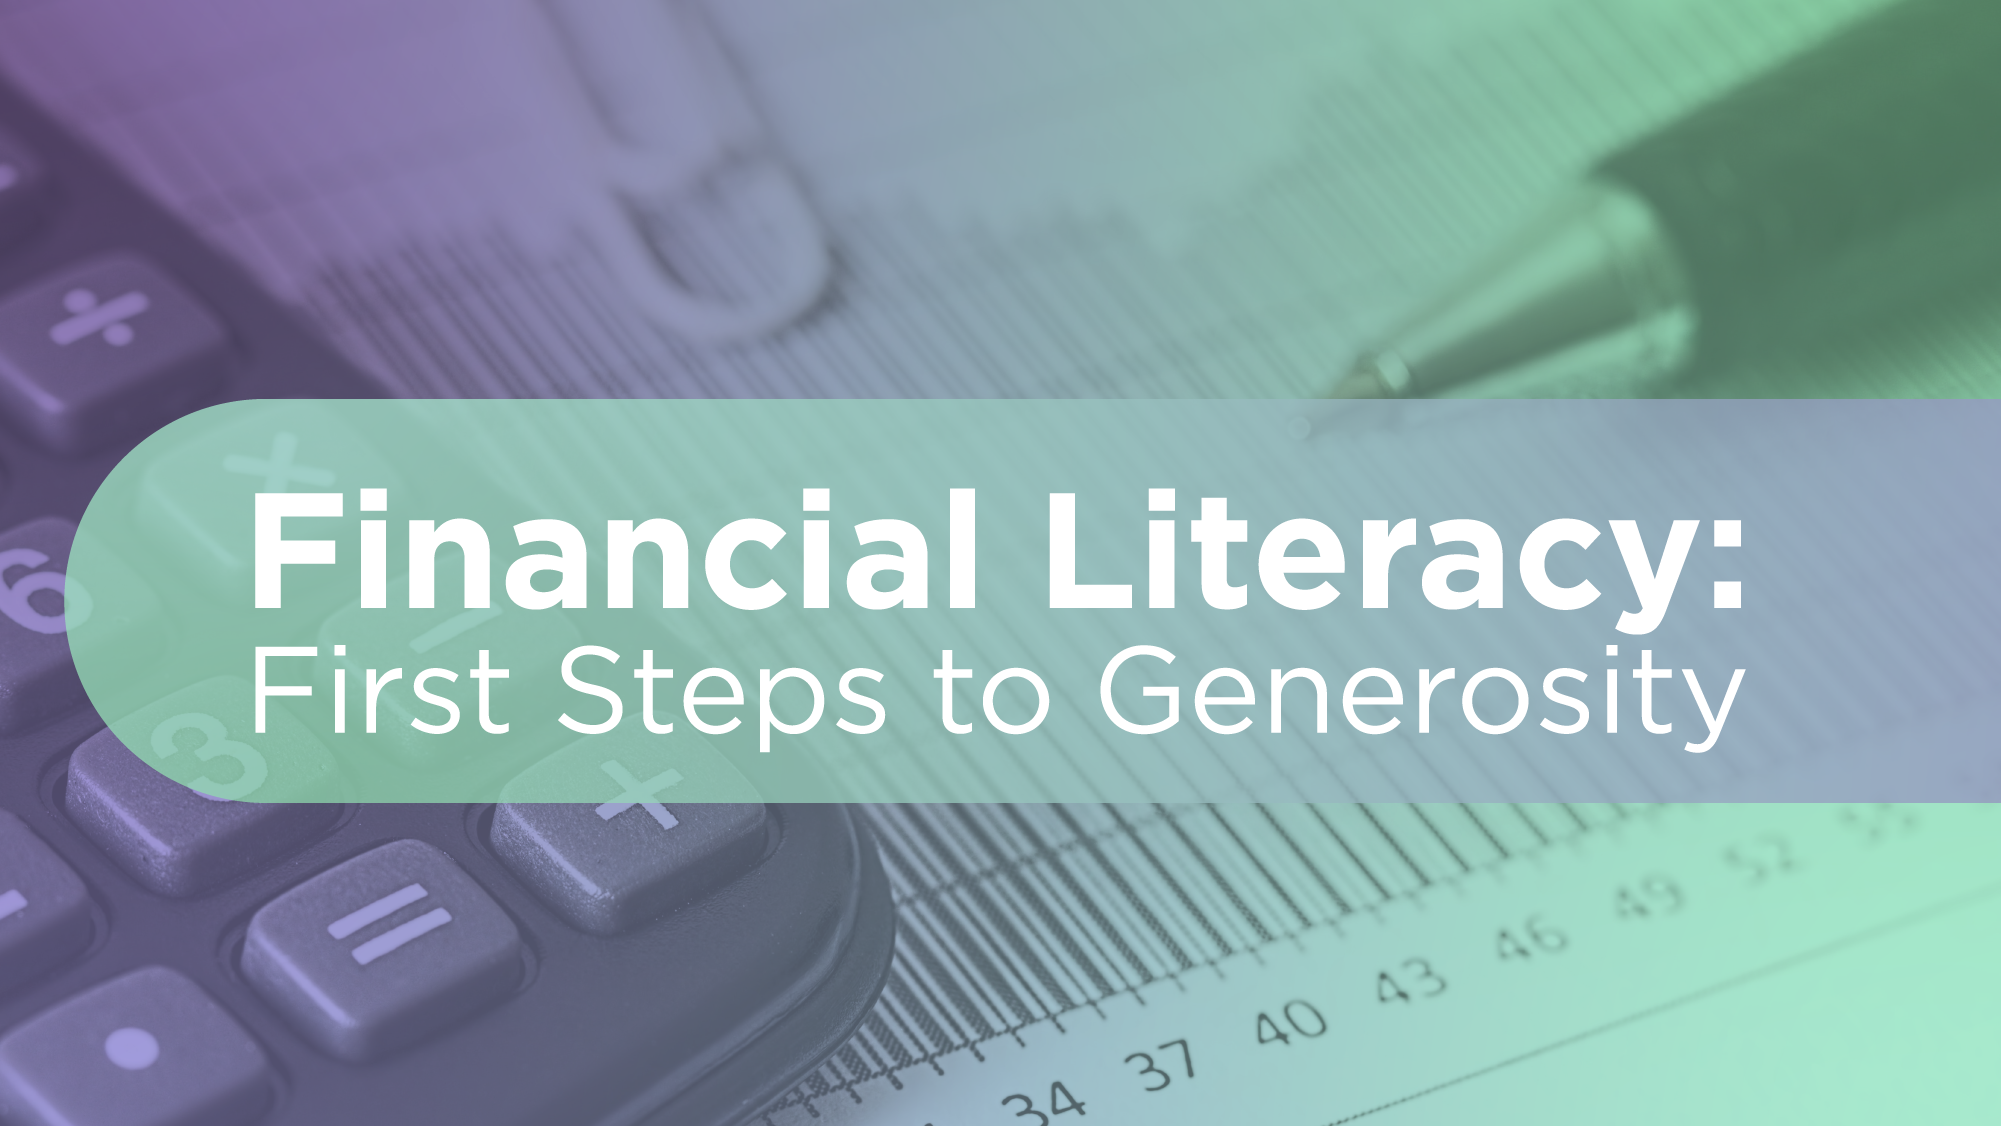 Financial Literacy: First Steps to Generosity